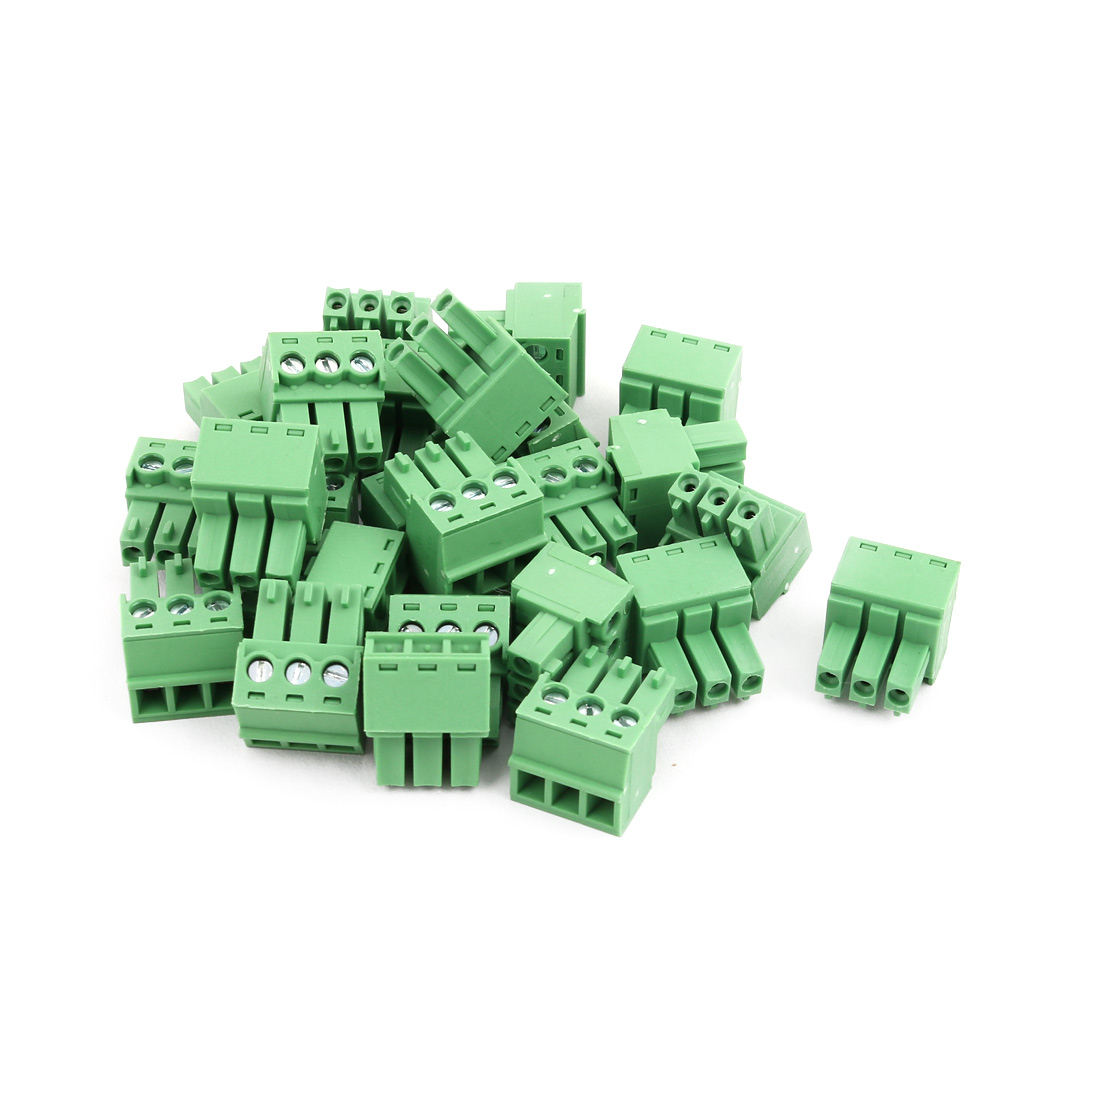 25Pcs AC 300V 8A 3.81mm Pitch 3P Terminal Block Wire Connector for PCB Mounting